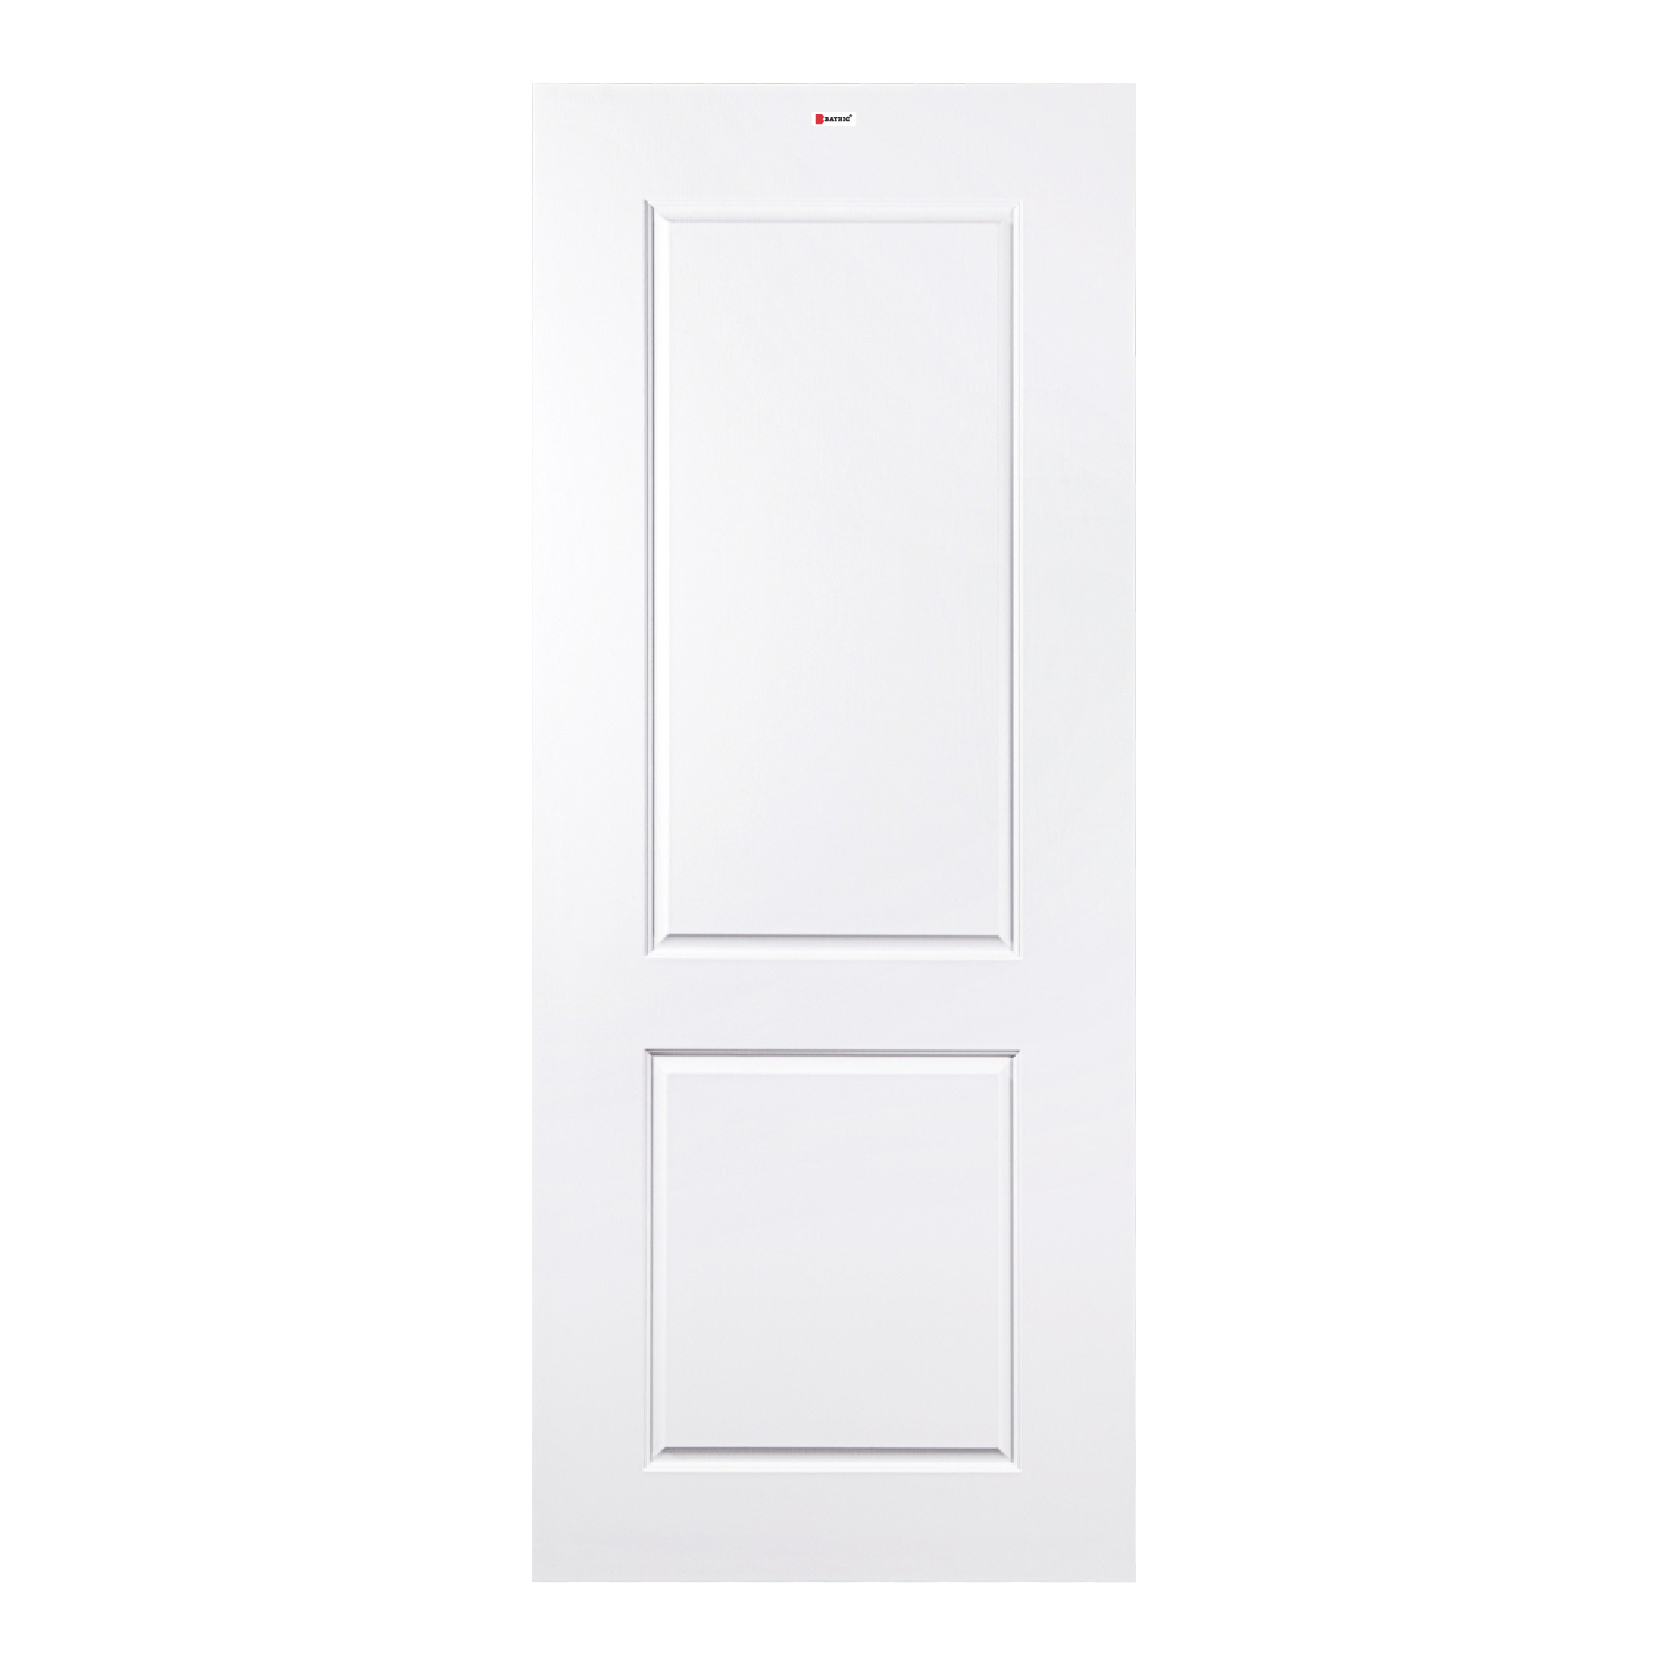 door-upvc-bathic-btu204-white-1